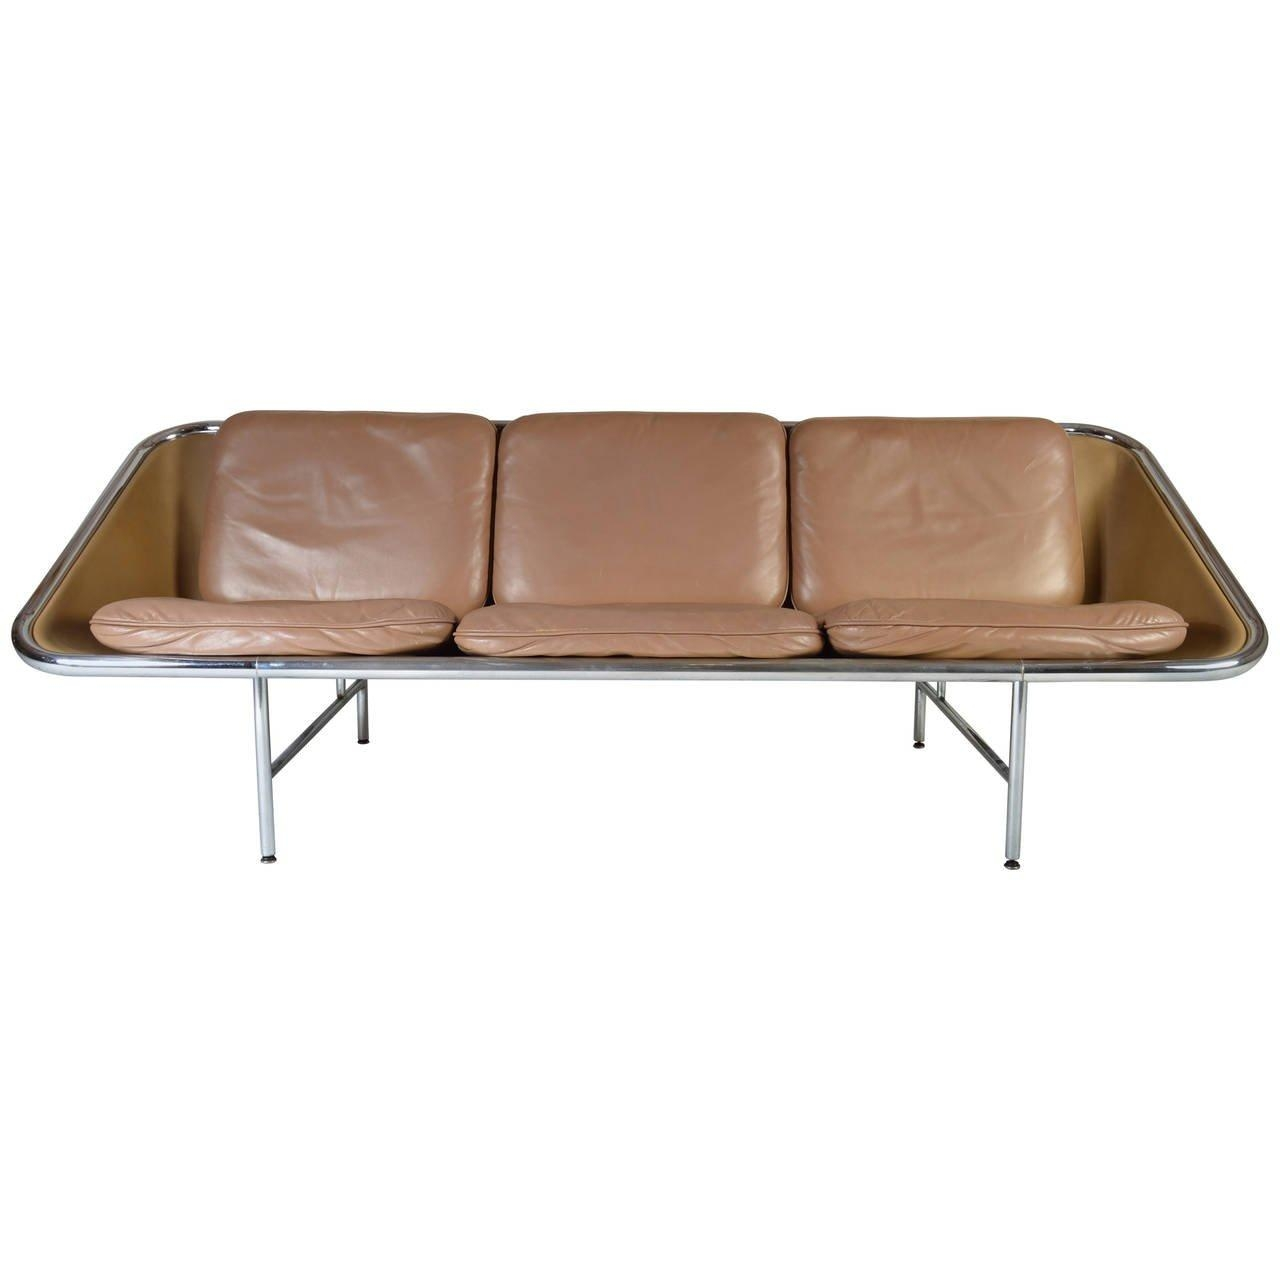 George Nelson Sling Sofa For Herman Miller At 1Stdibs Throughout George Nelson Sofas (Image 8 of 20)